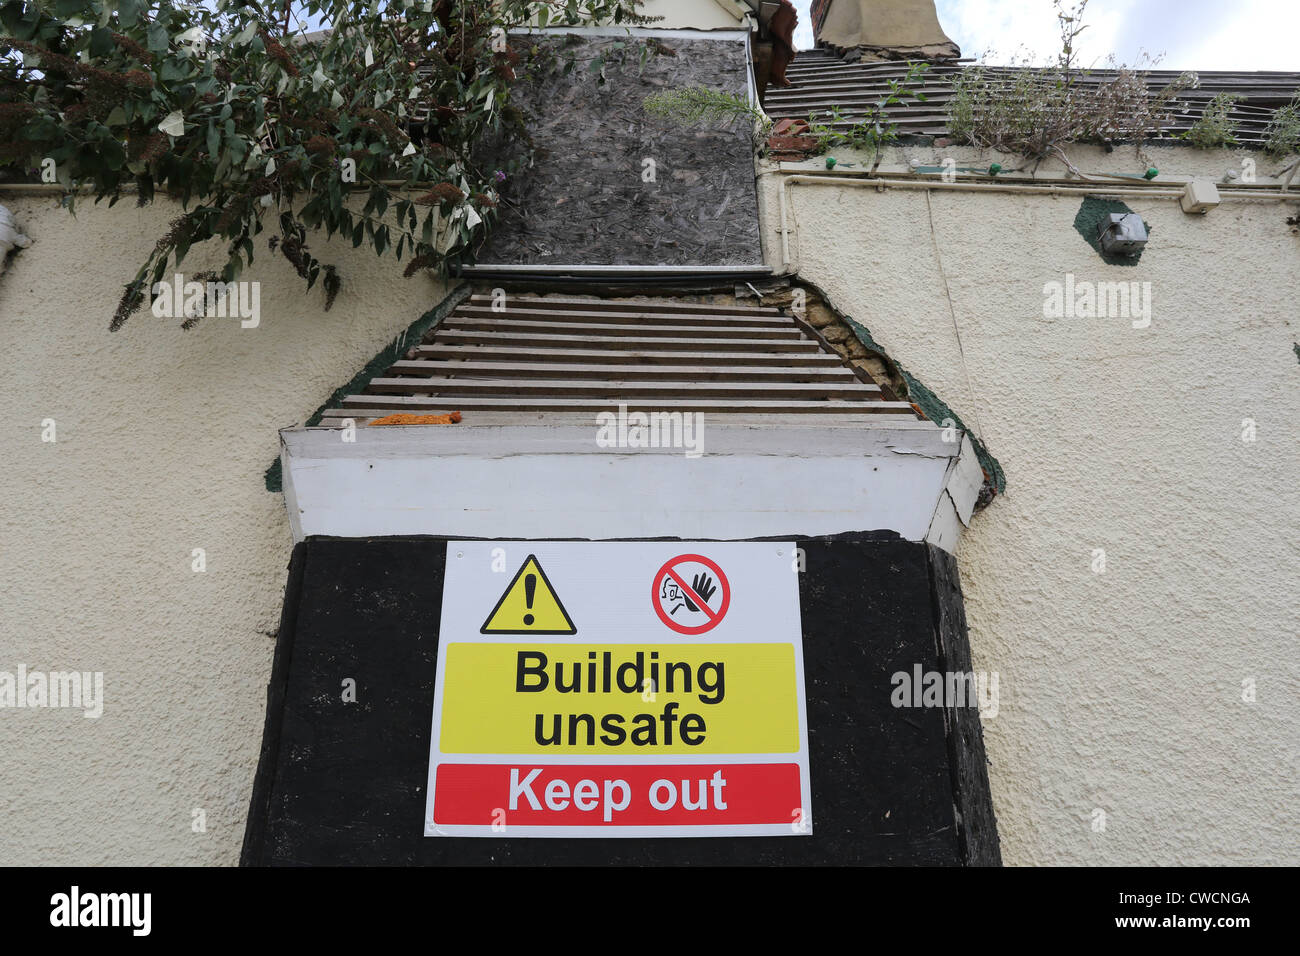 Unsafe building warning sign Stock Photo